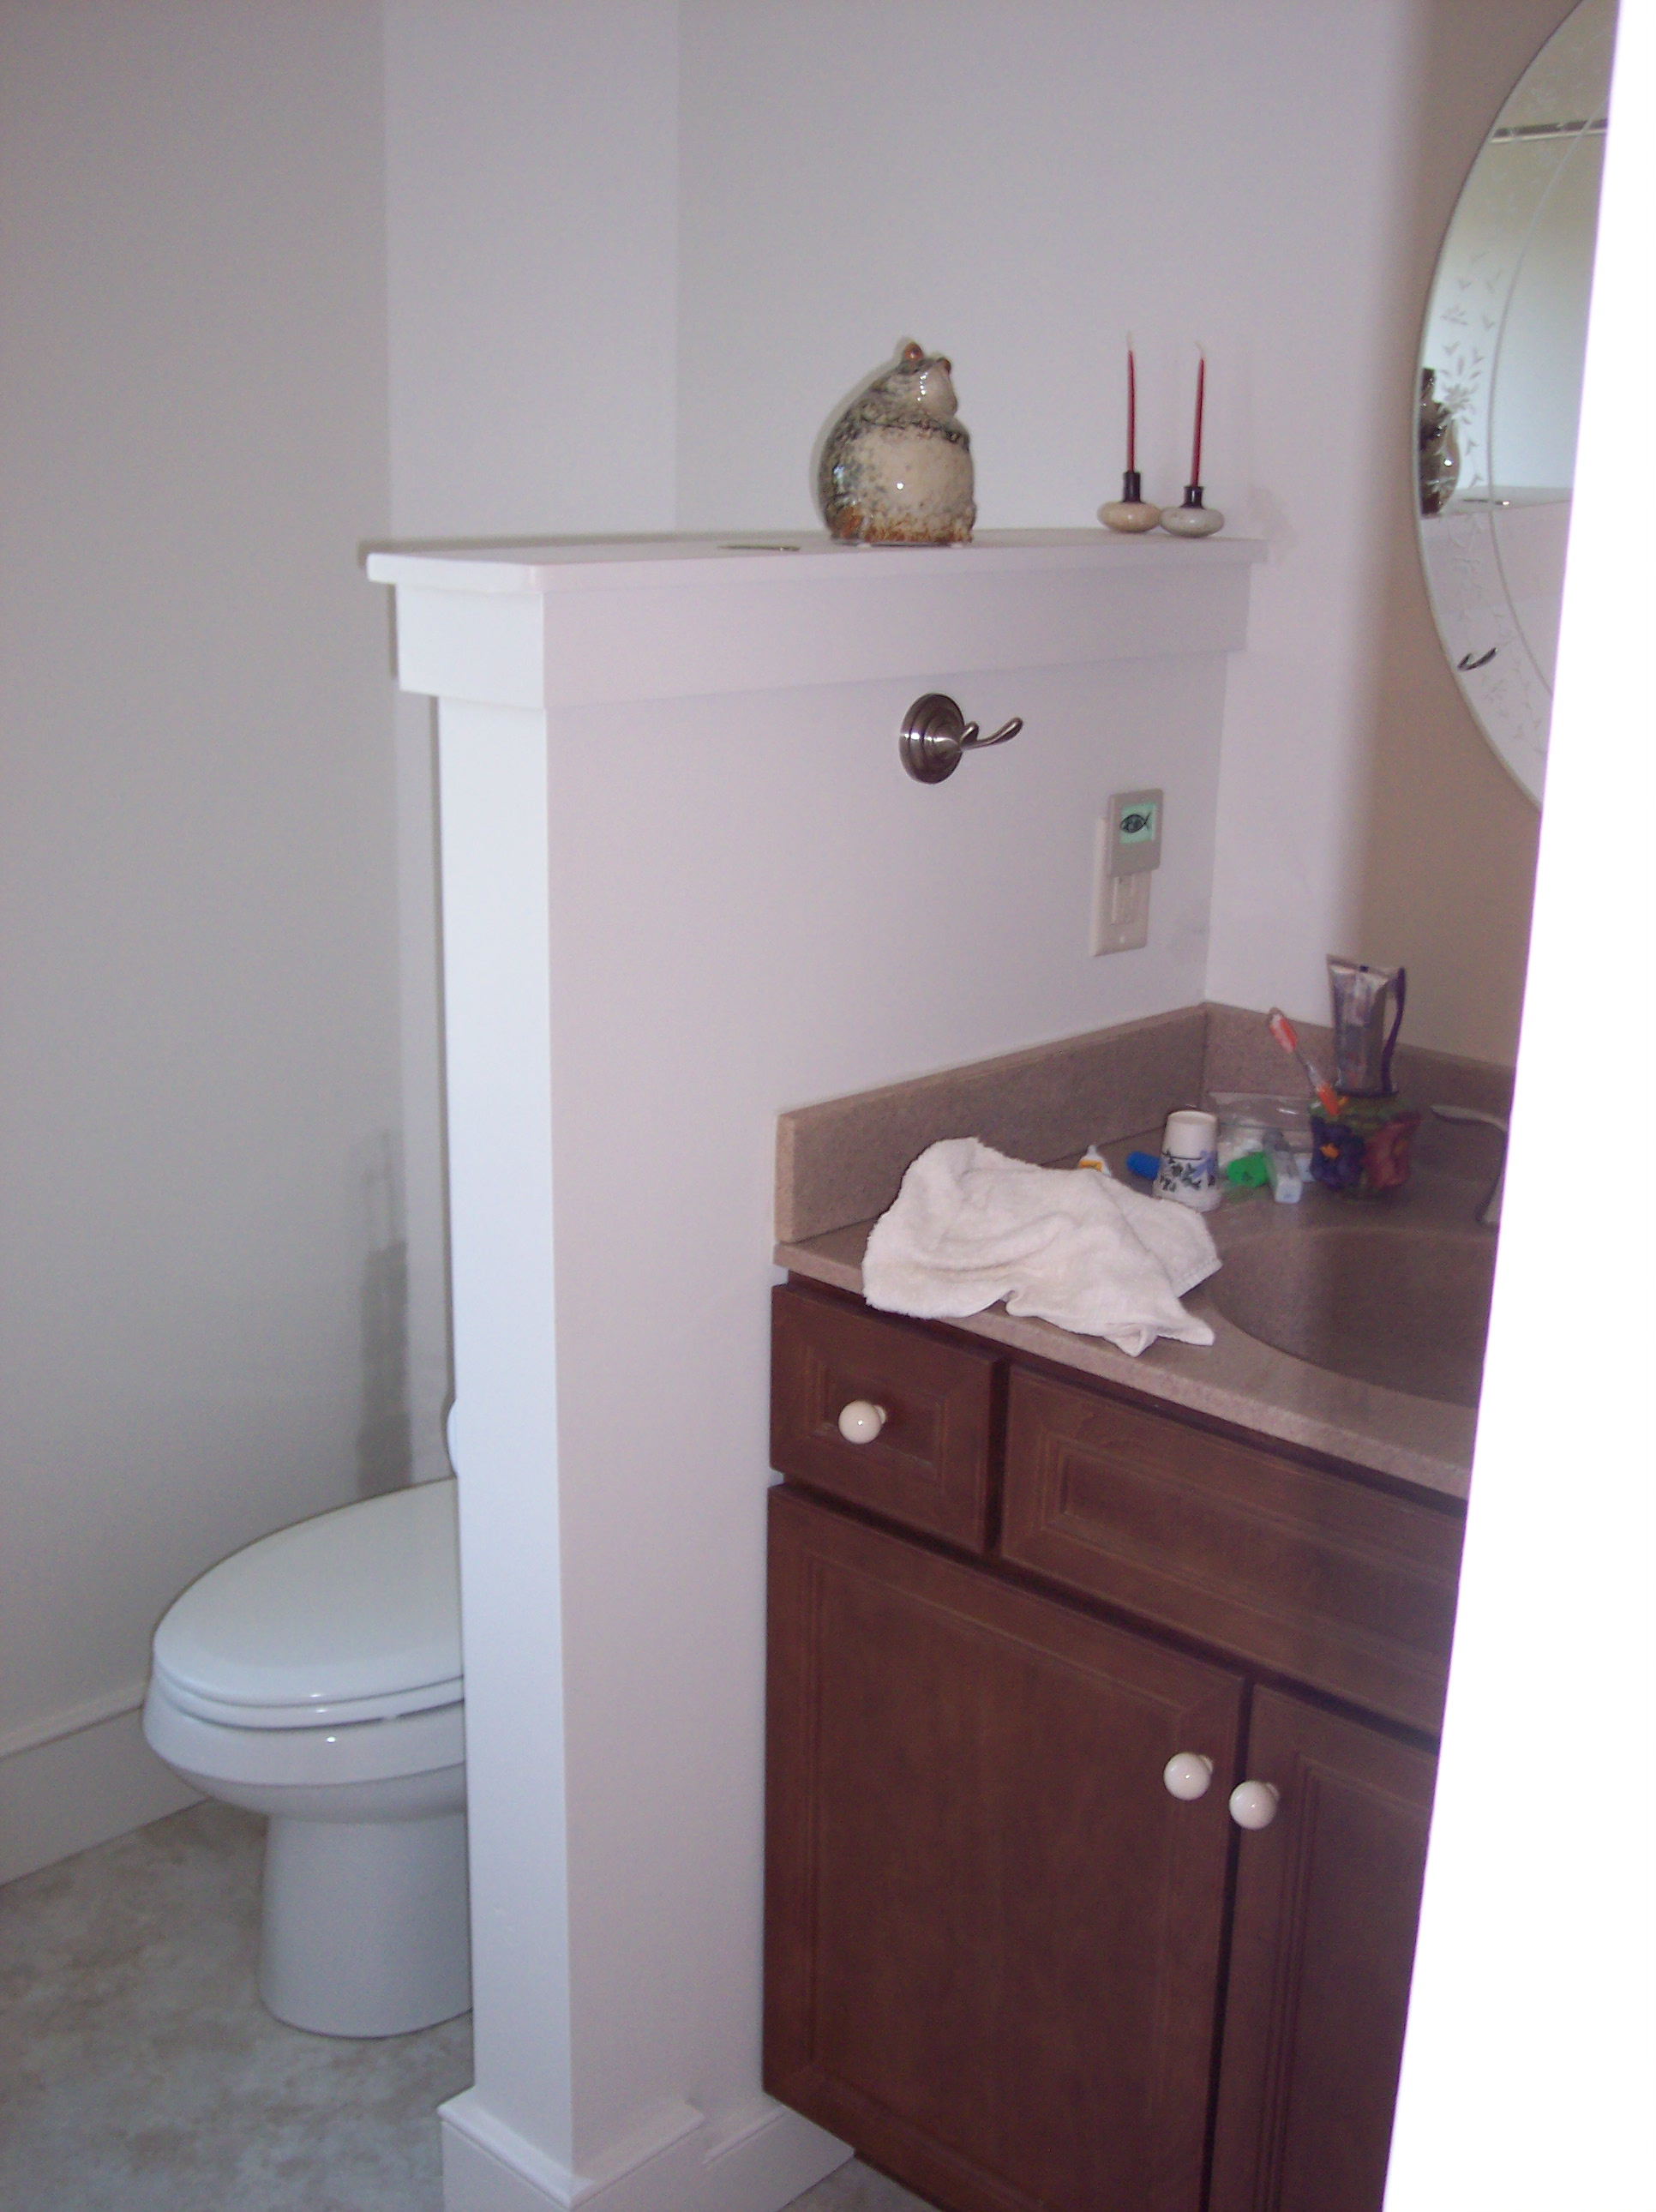 Remodeling ideas for small bathrooms lancaster pa for Small bathroom renovations pictures